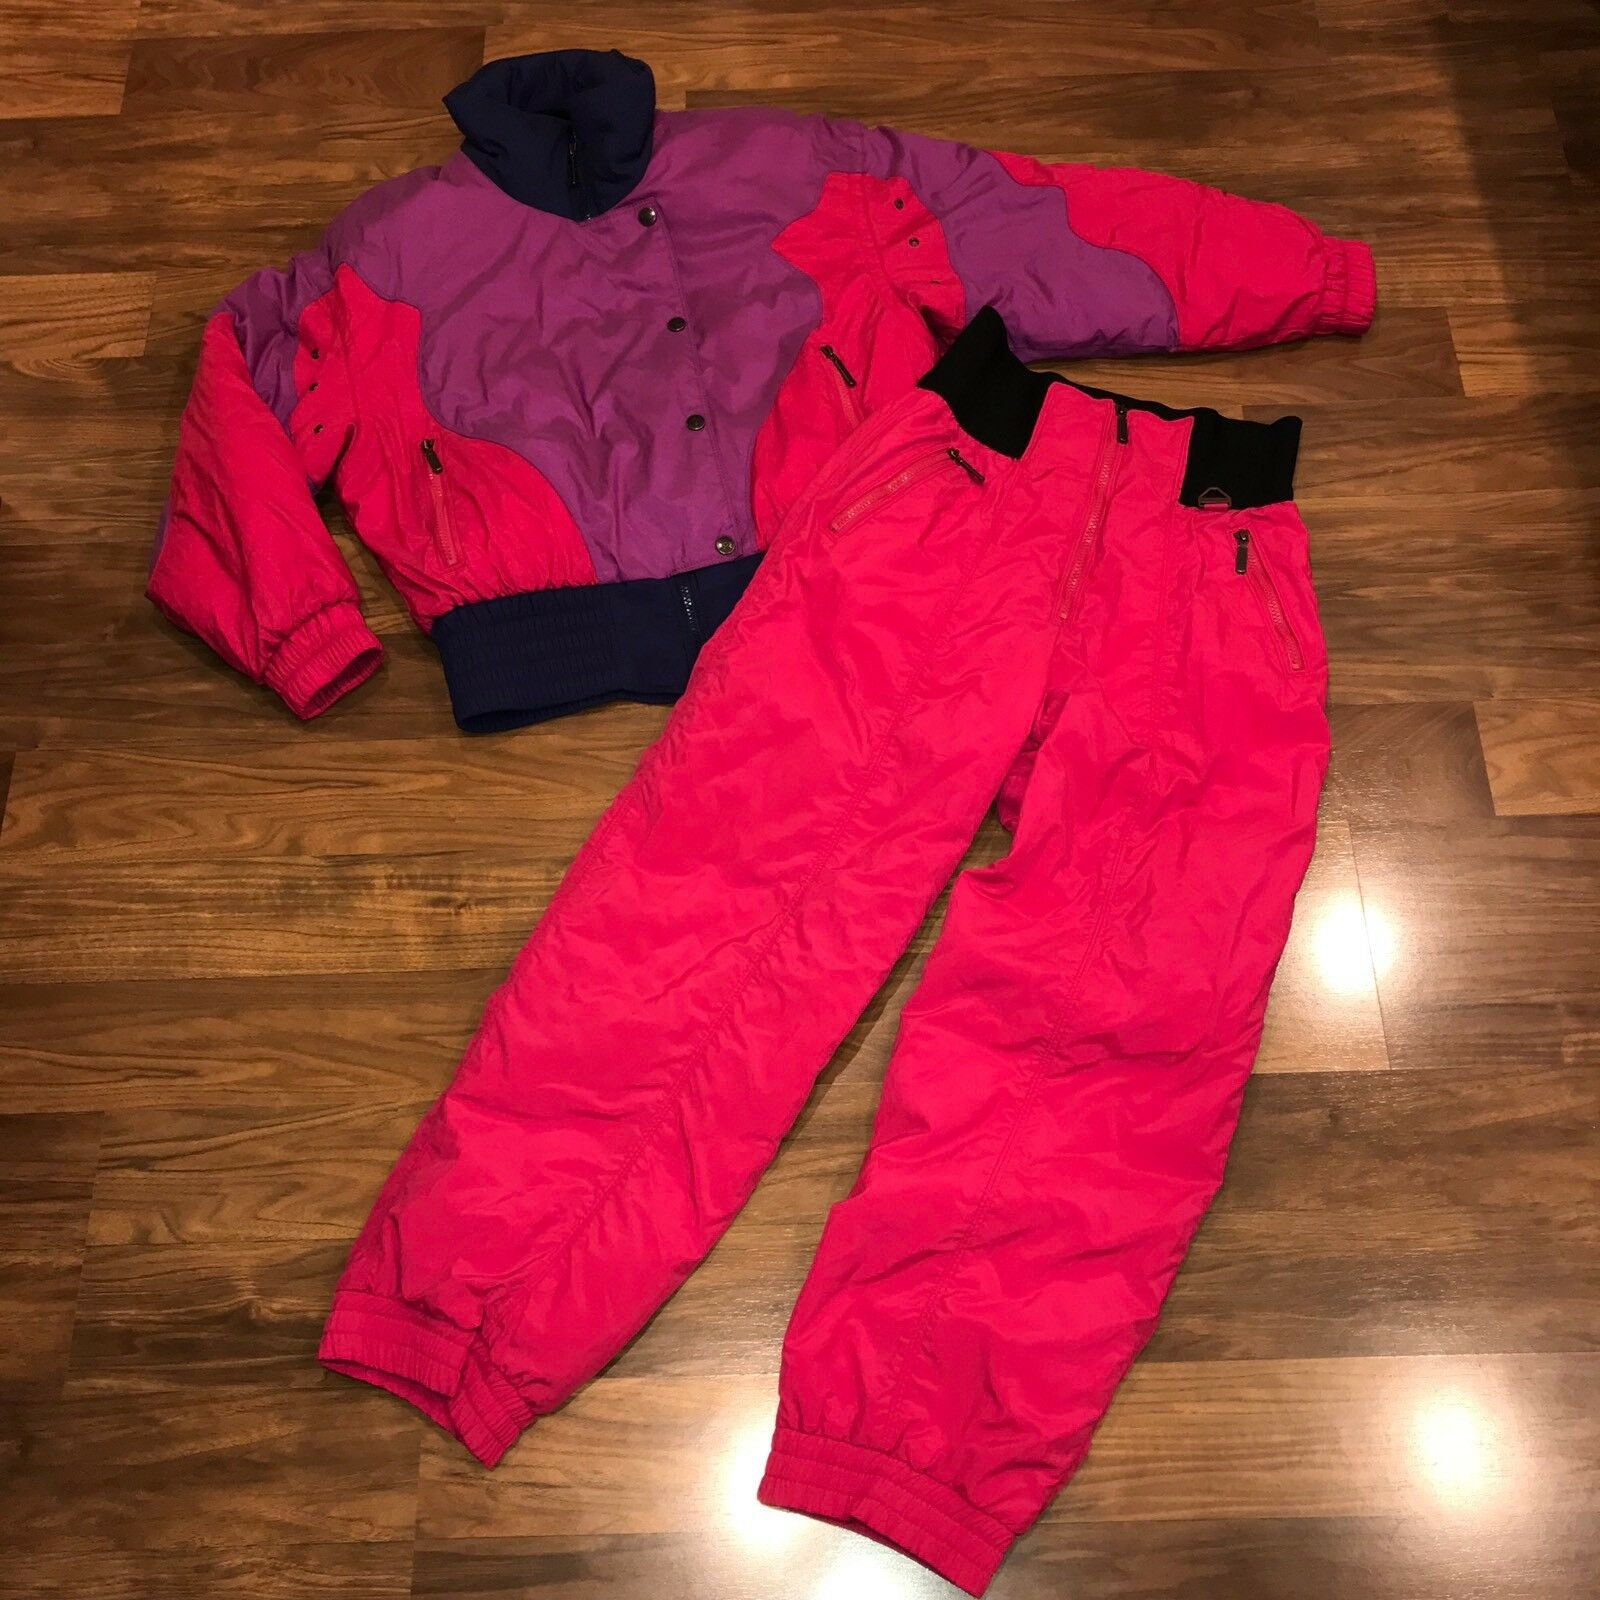 Vtg 80s 90s TYROLIA Pink 2 piece SNOWSUIT Womens  10 Ski Snow Suit Coat Bib Pants  selling well all over the world